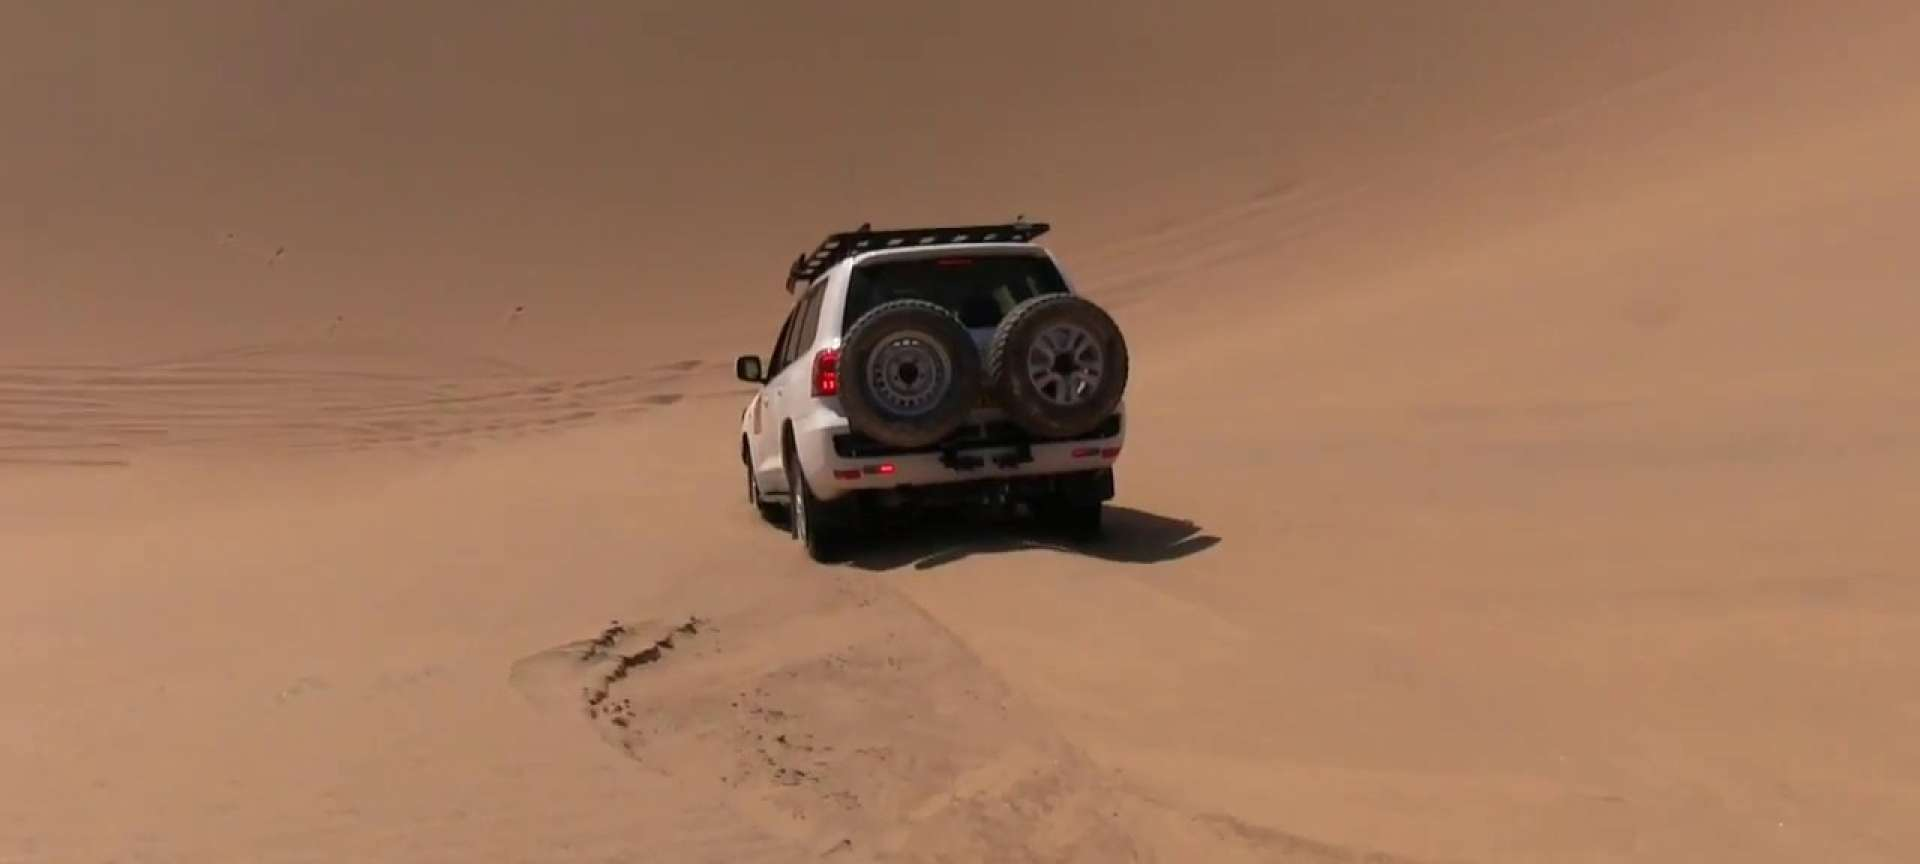 Dune driving costs are relatively inexpensive